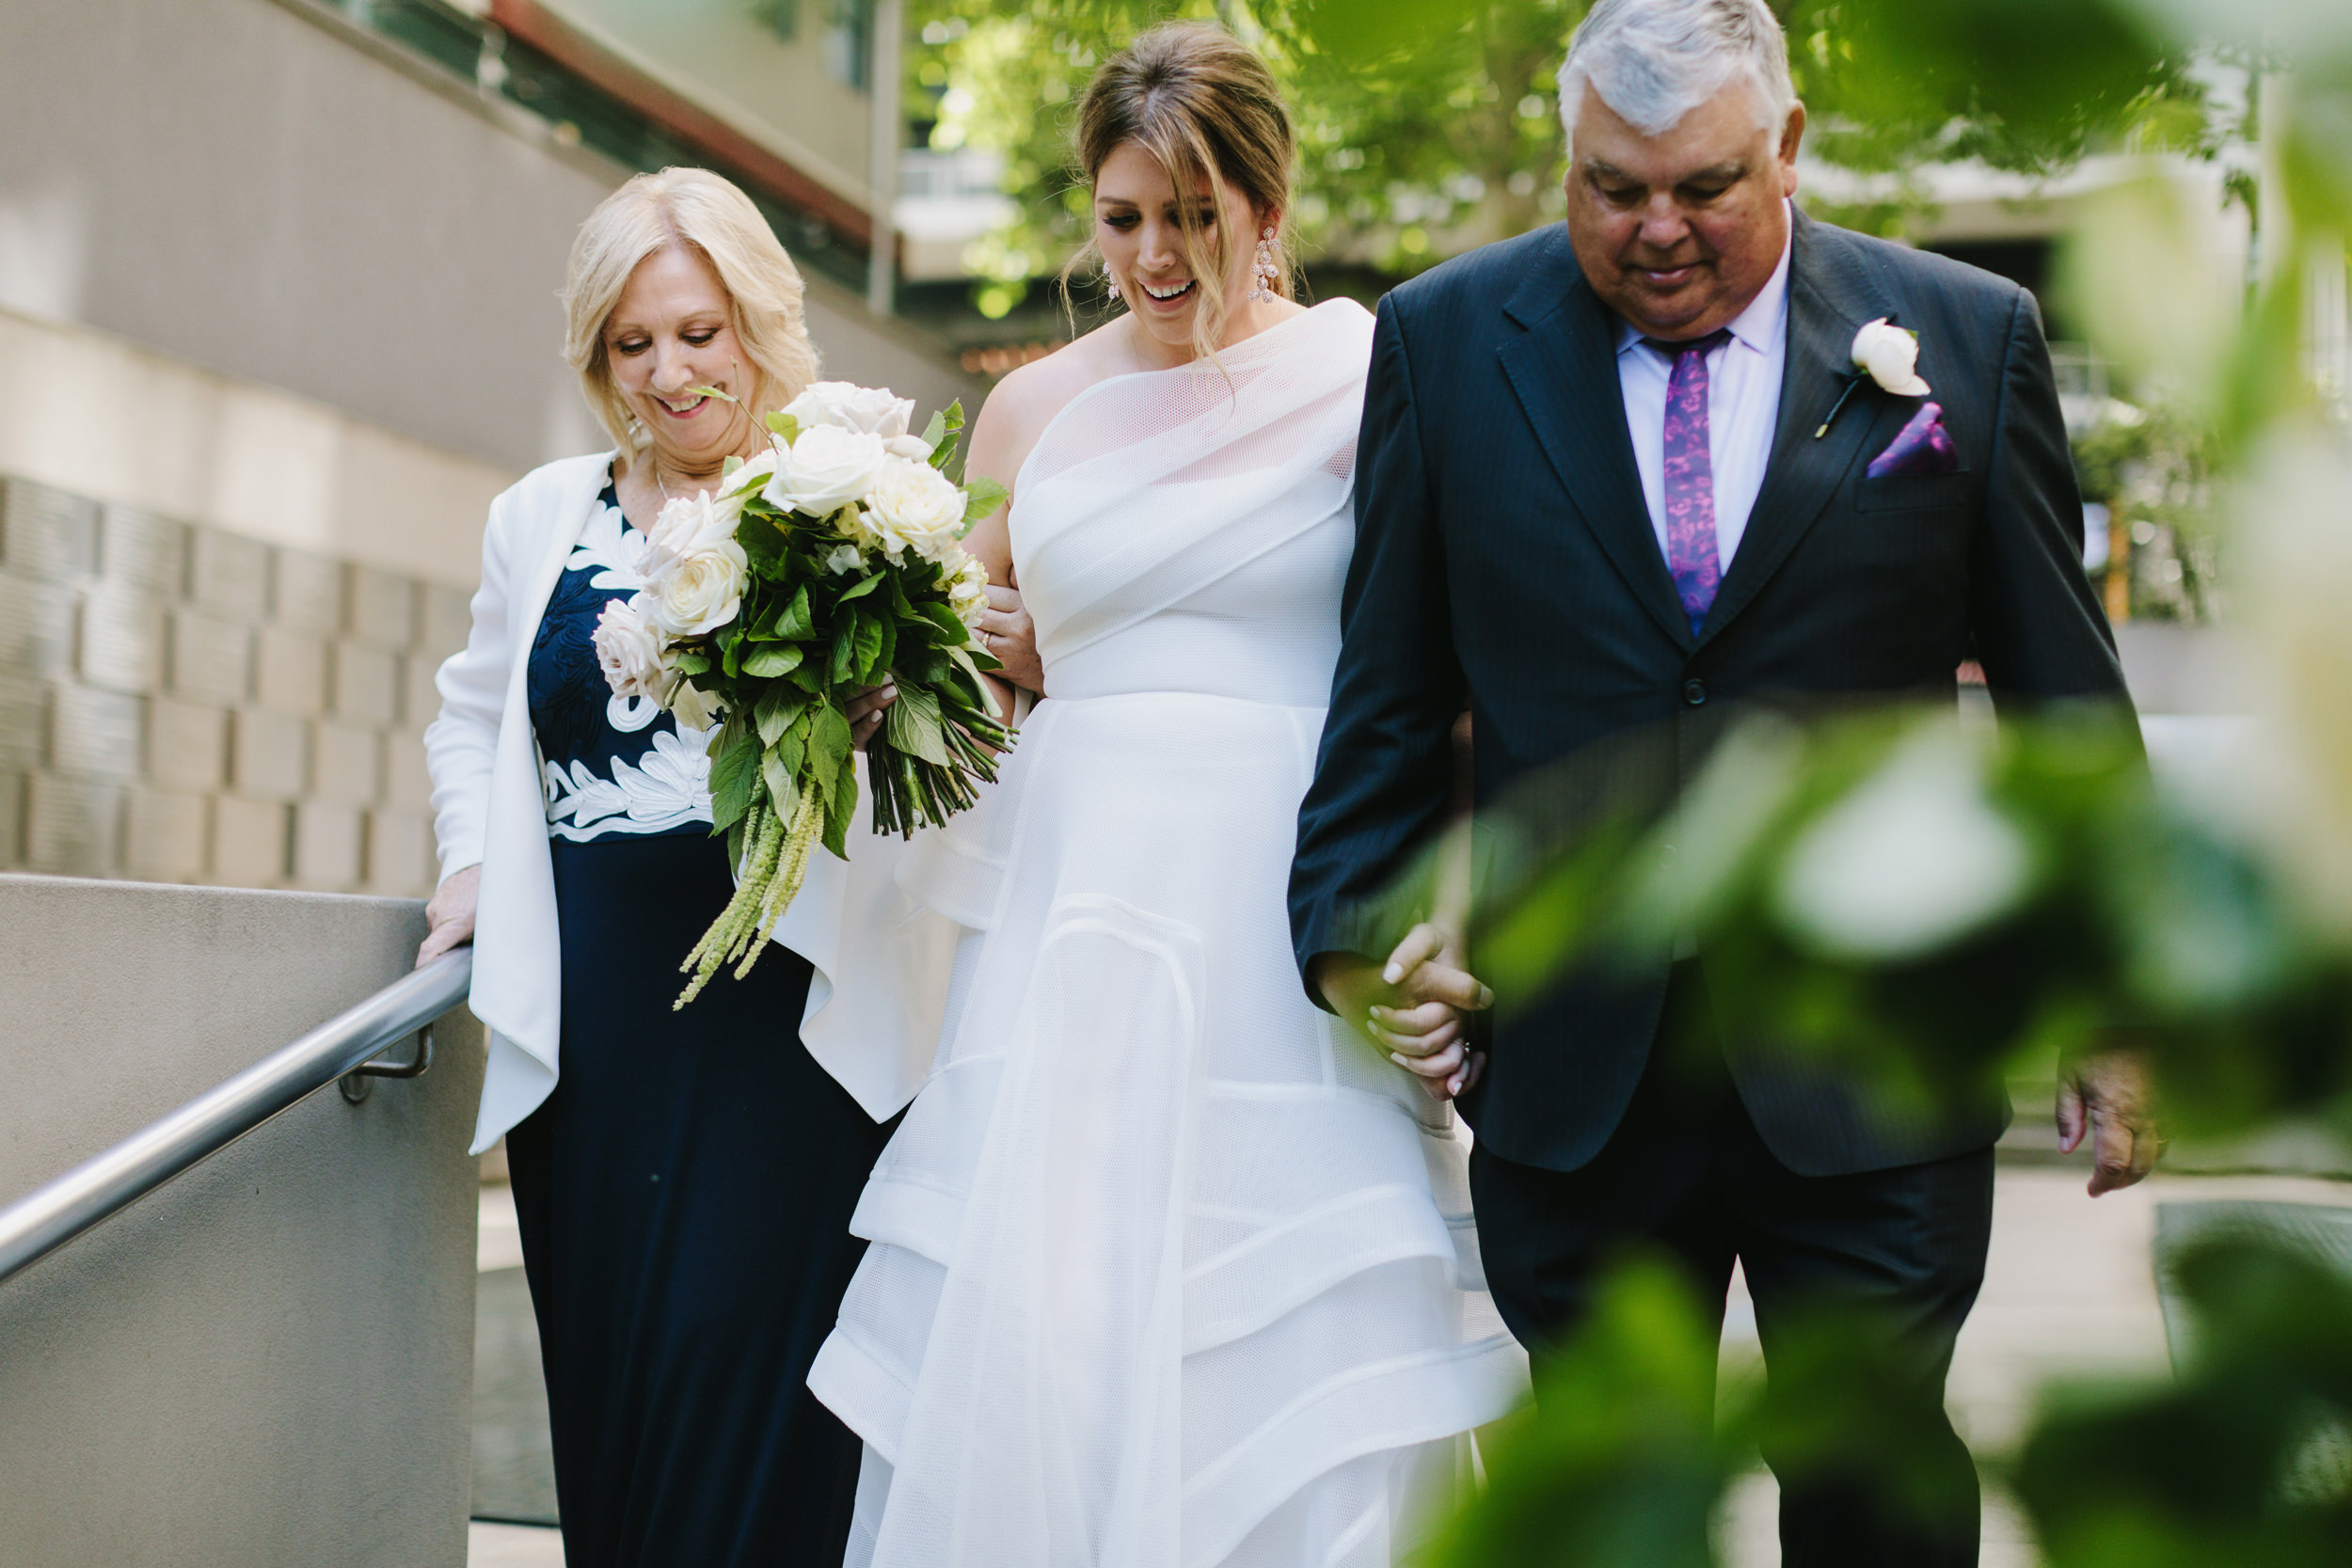 Melbourne_City_Rooftop_Wedding_Tyson_Brigette052.JPG